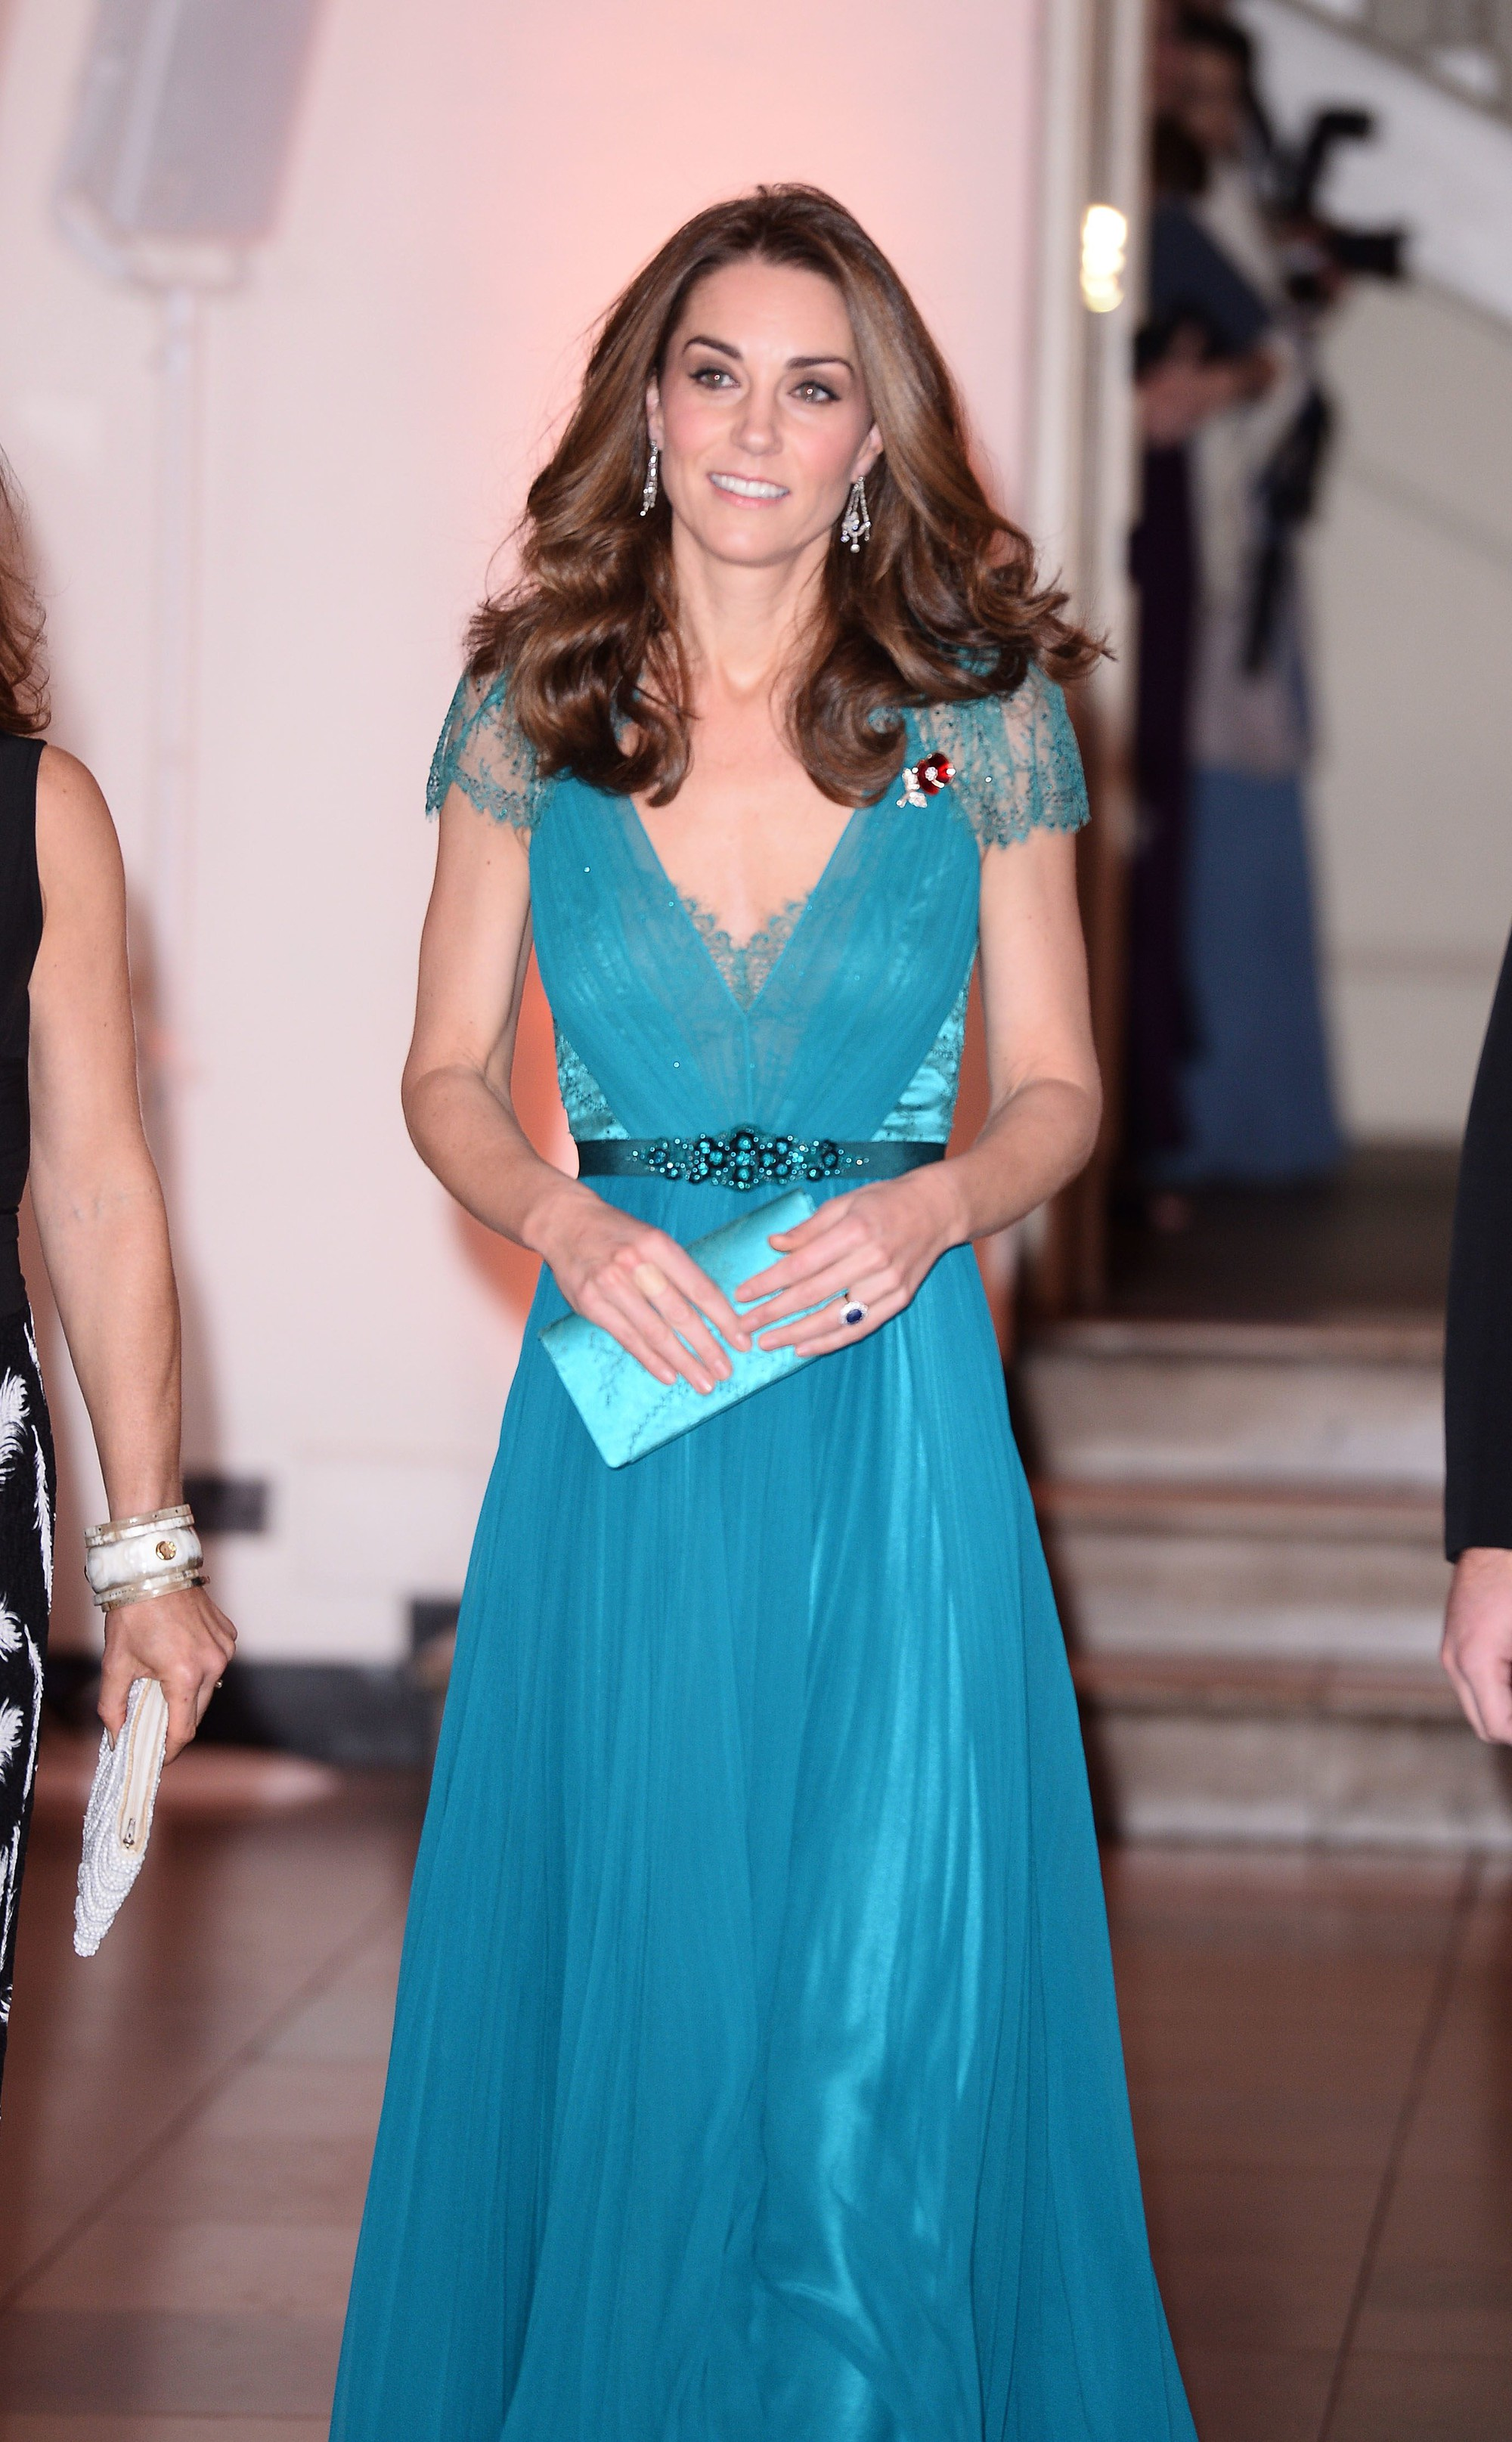 kate_middleton_gettyimages-1065150638 (1)